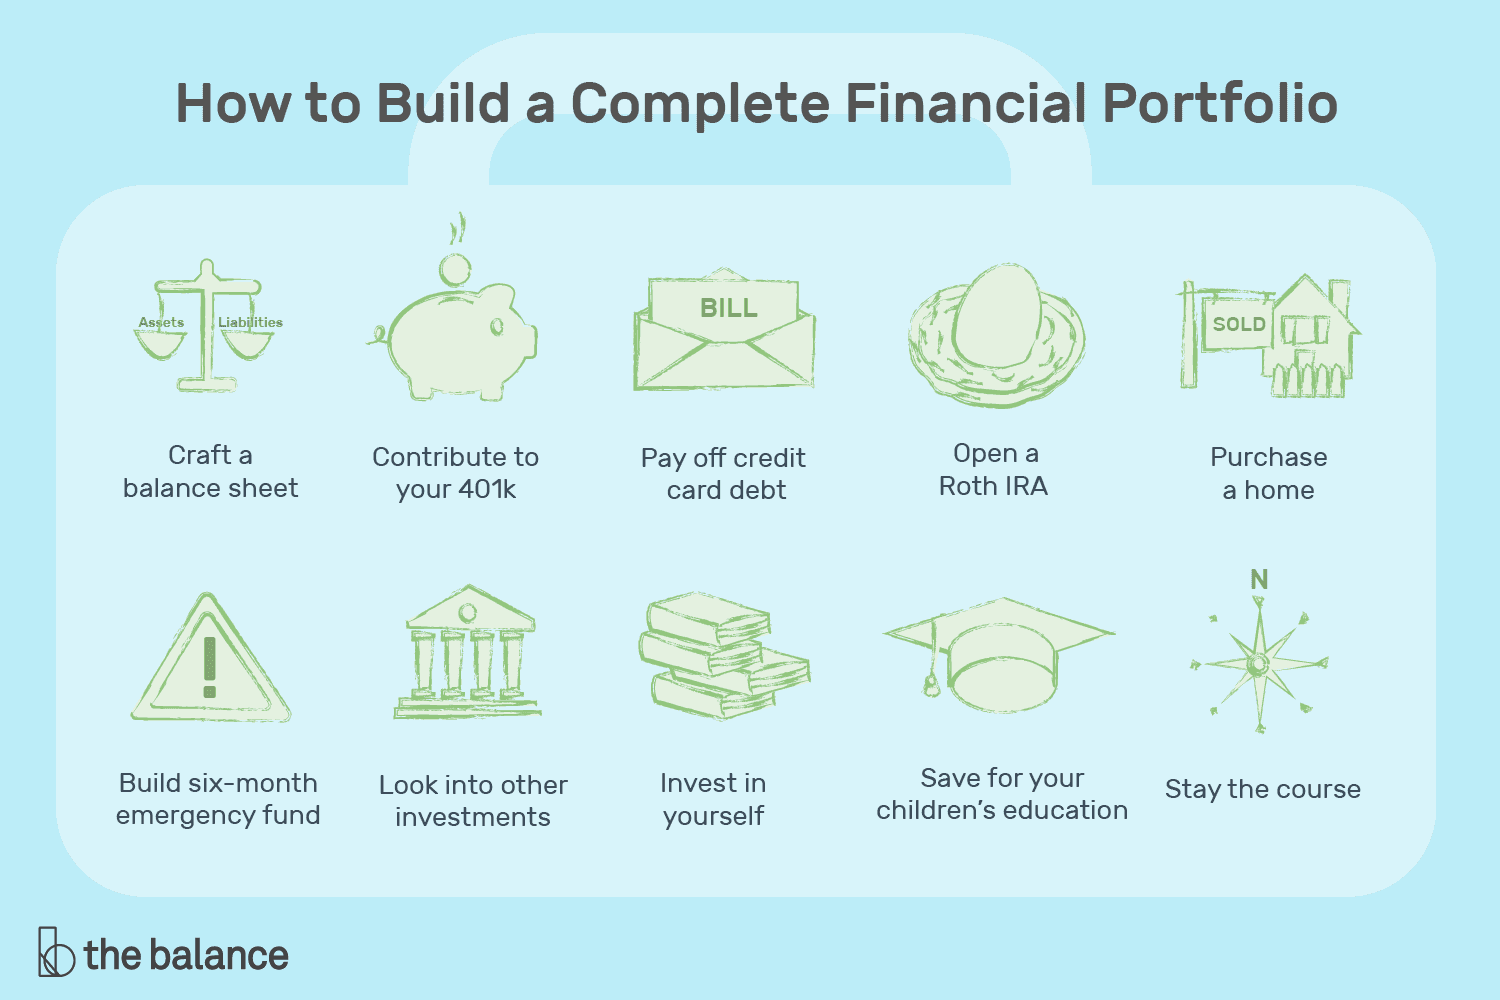 Steps To Building A Complete Financial Portfolio